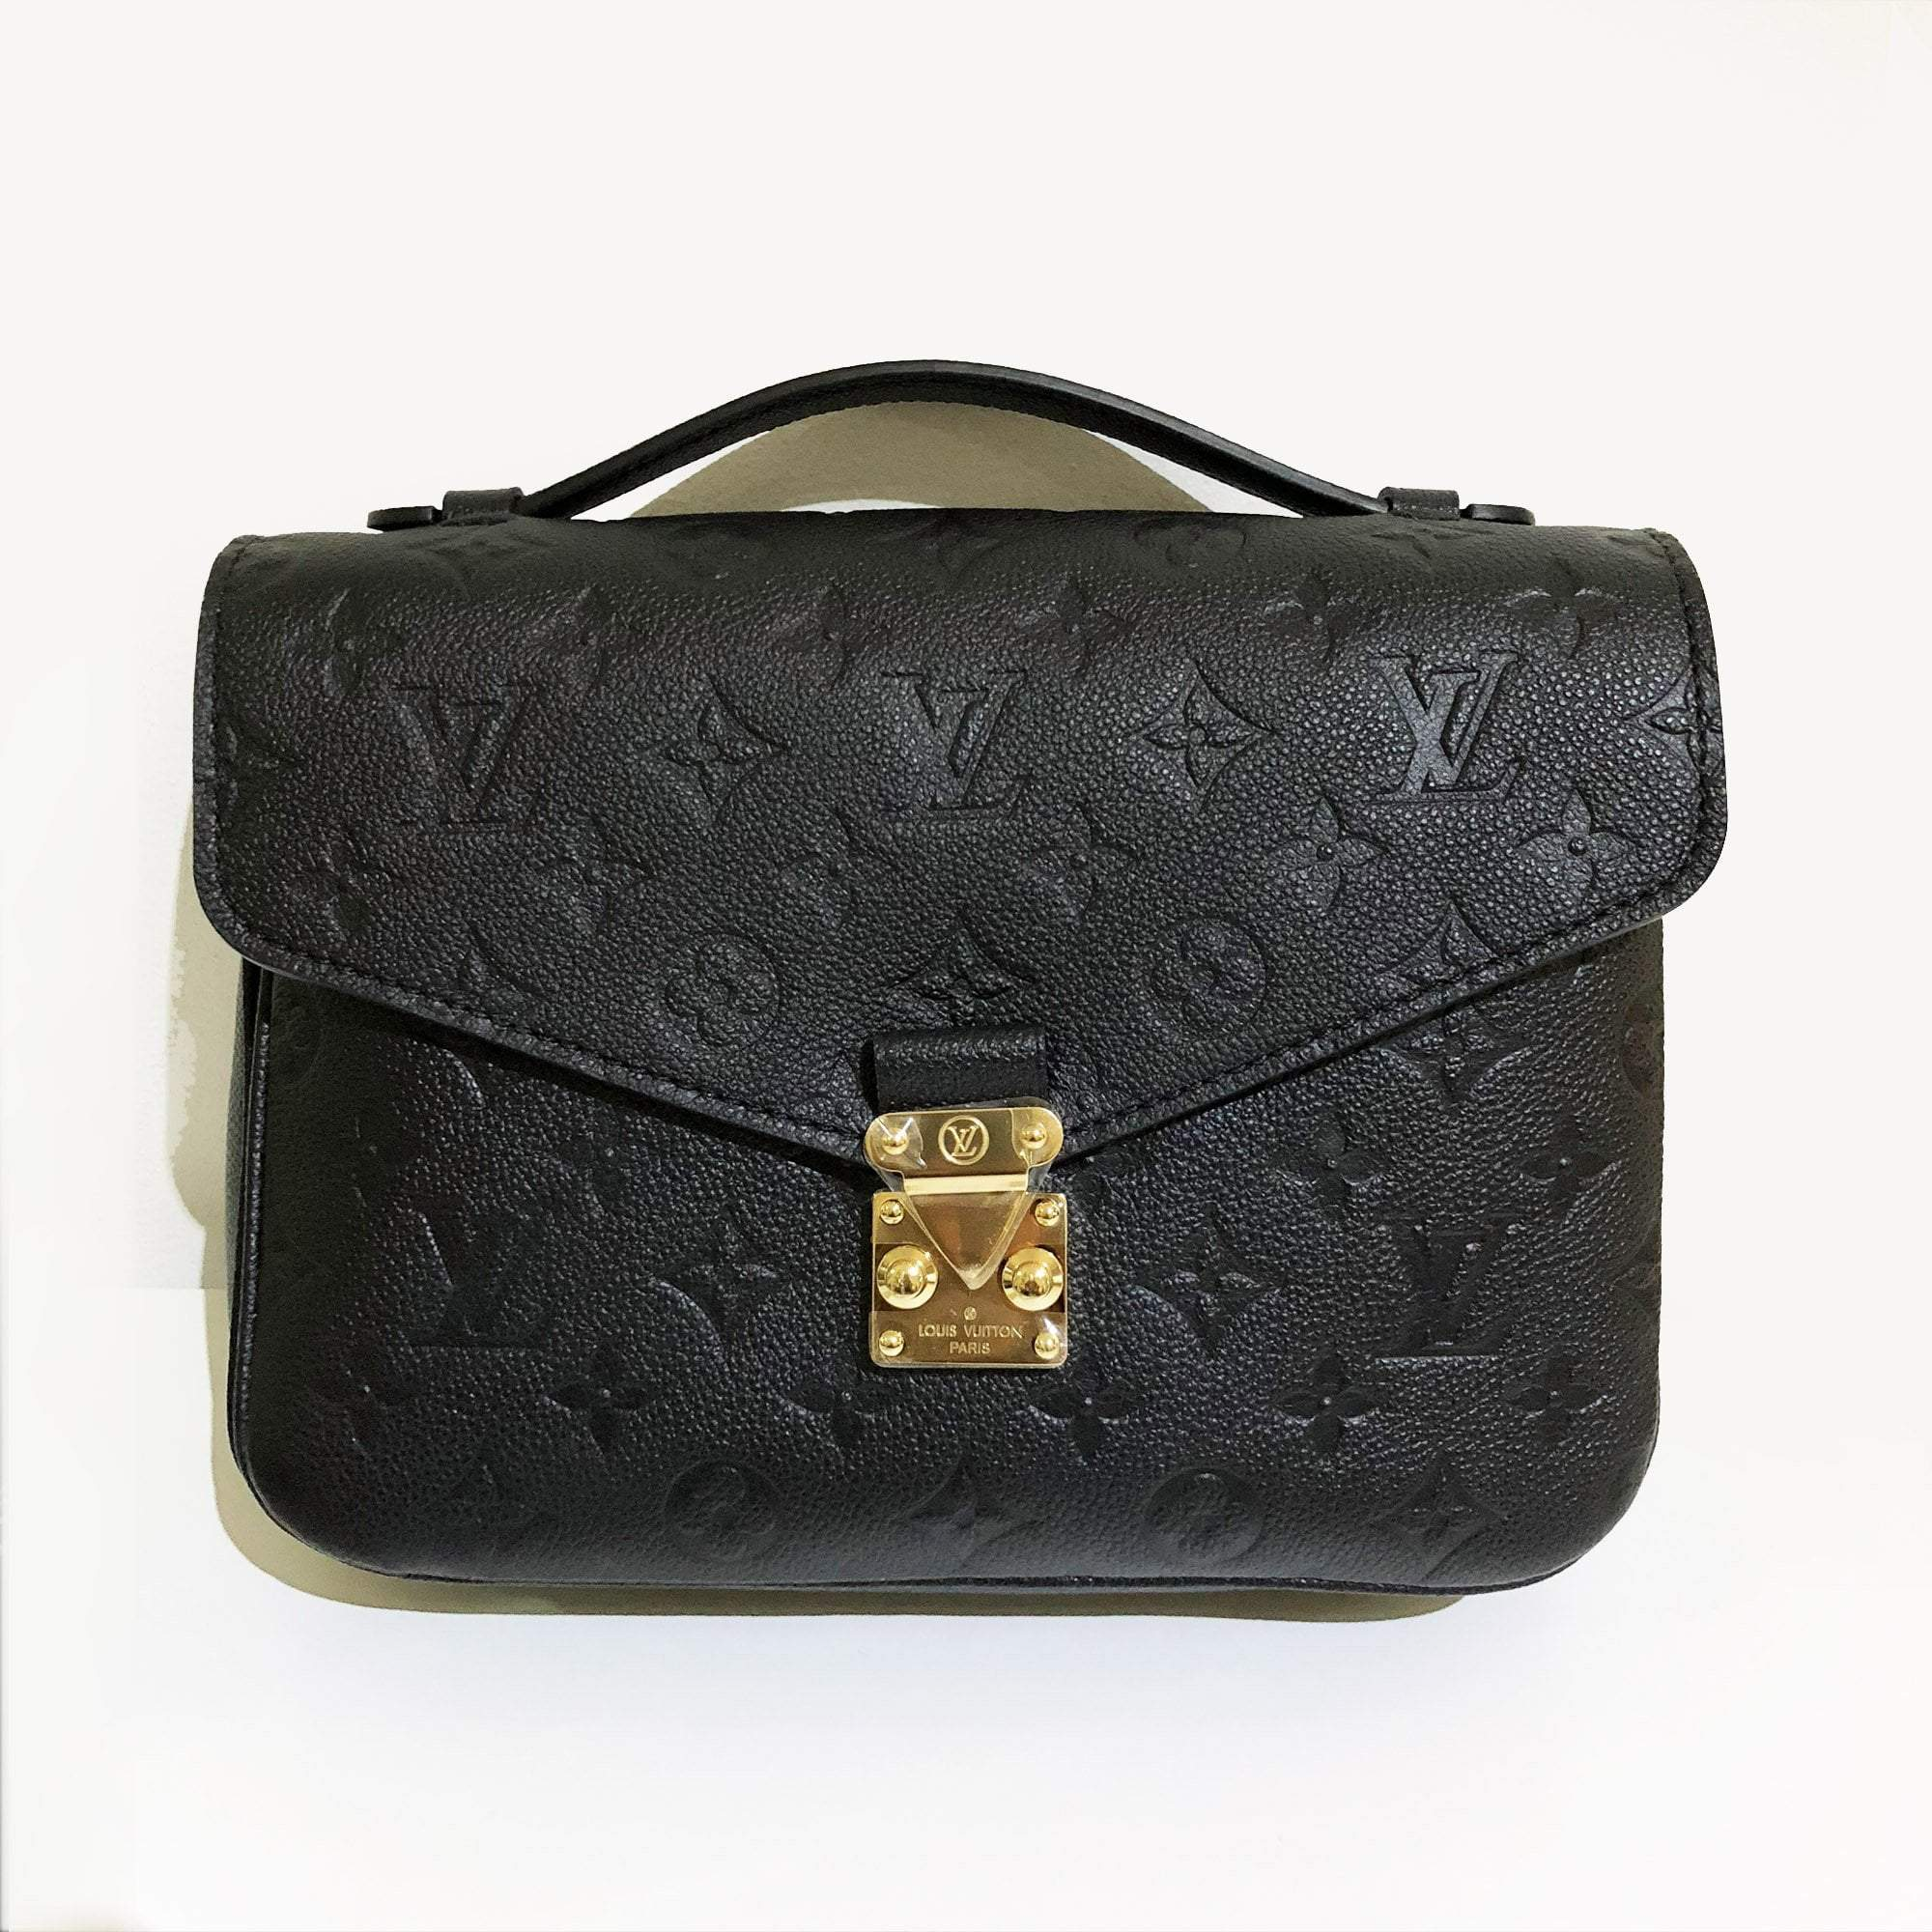 ad3724dc1e2d Louis Vuitton Pochette Metis Monogram Empreinte Leather Bag – Garderobe